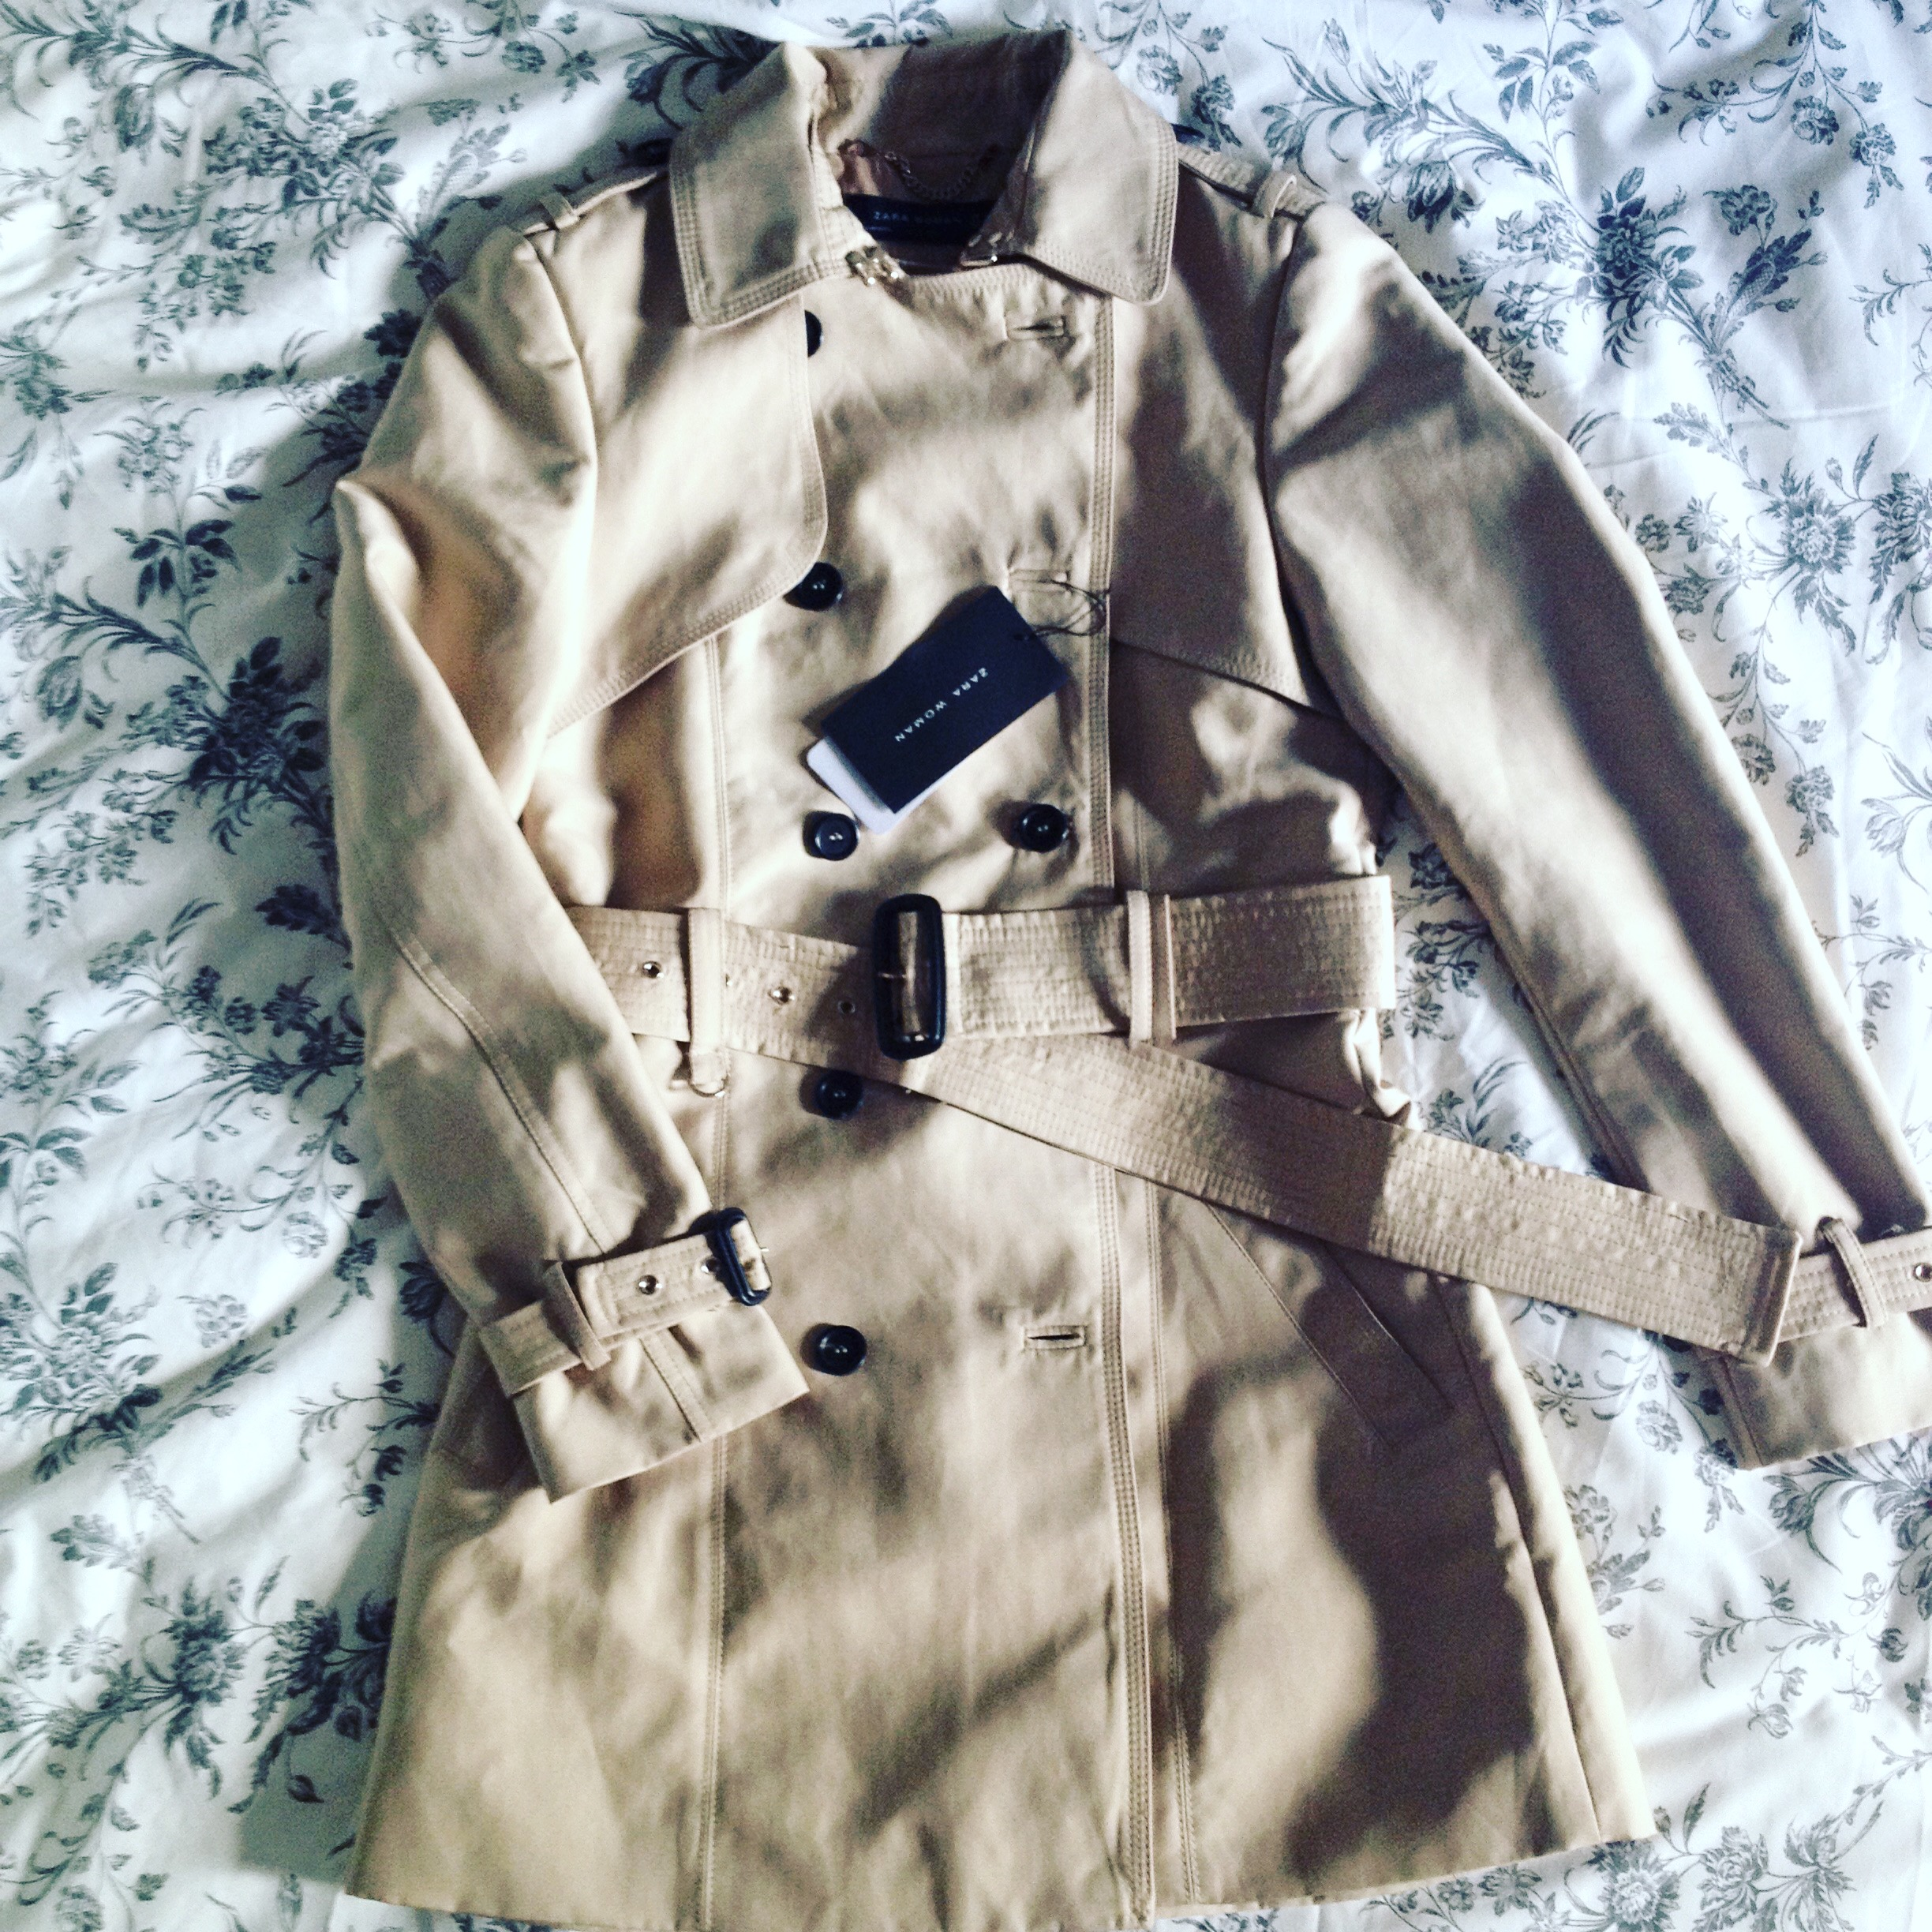 Classic trench: Zara, €79. A steal if you ask me!